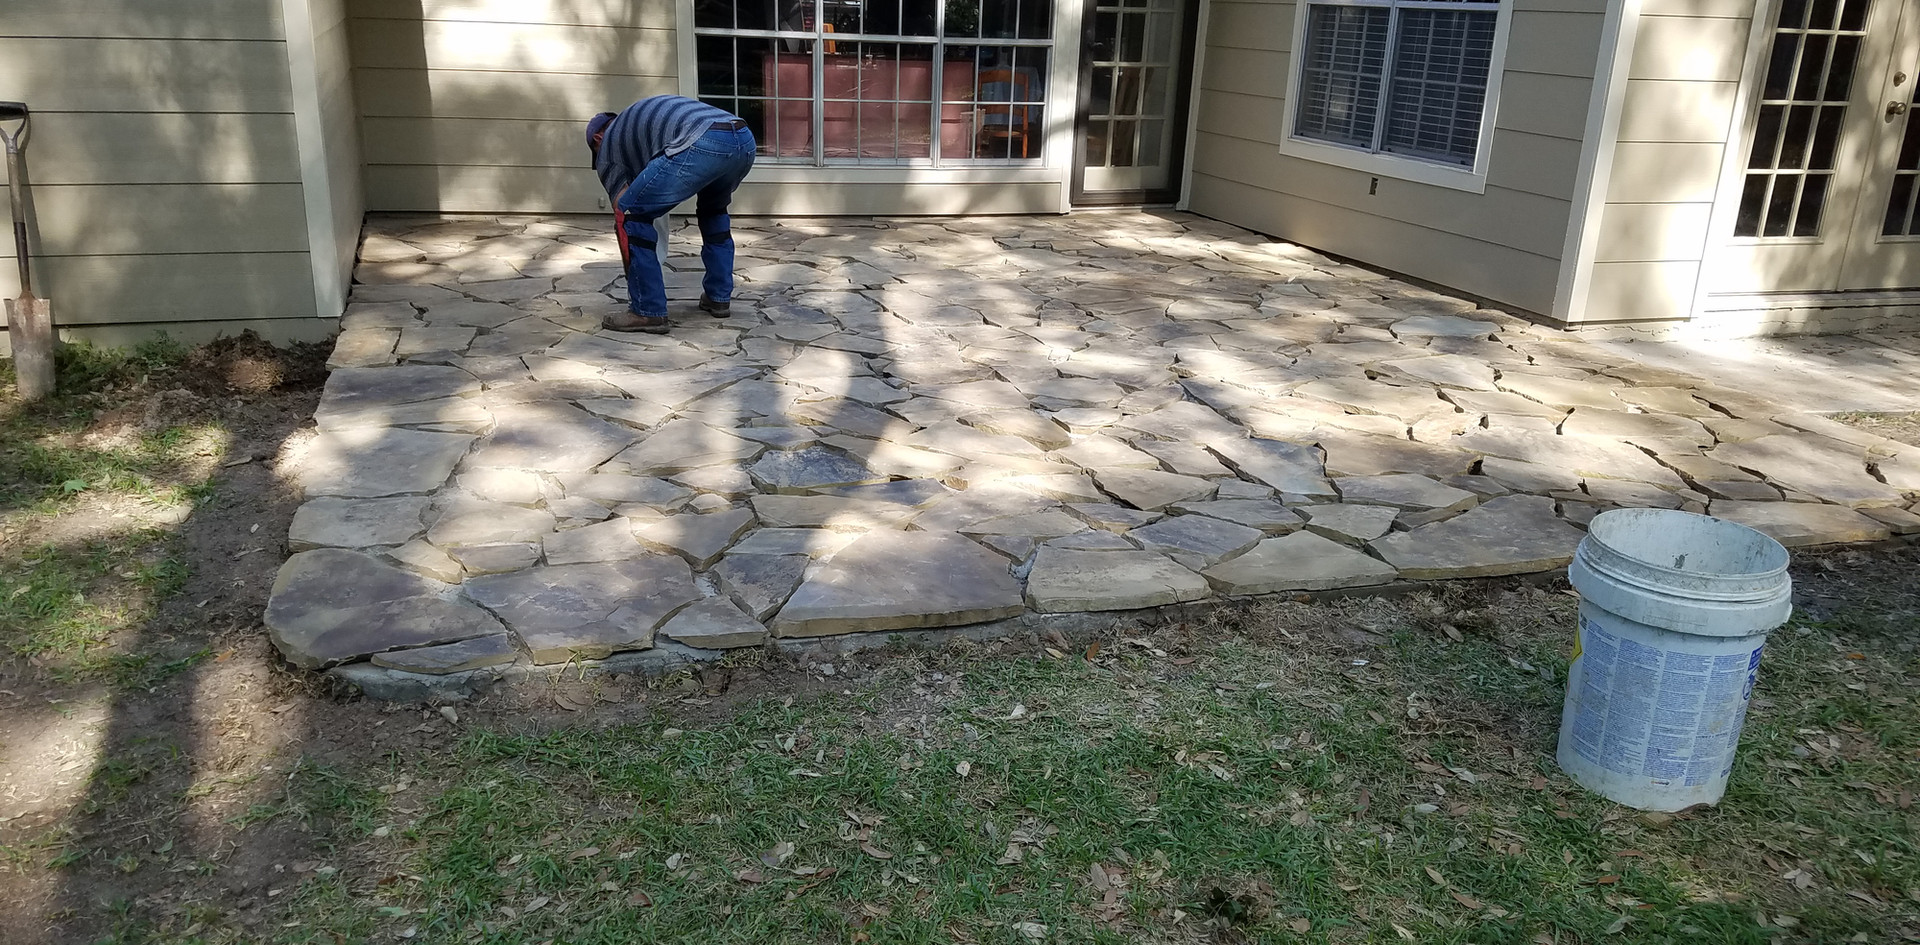 New Concrete and Flagstone Patio Project in Progress